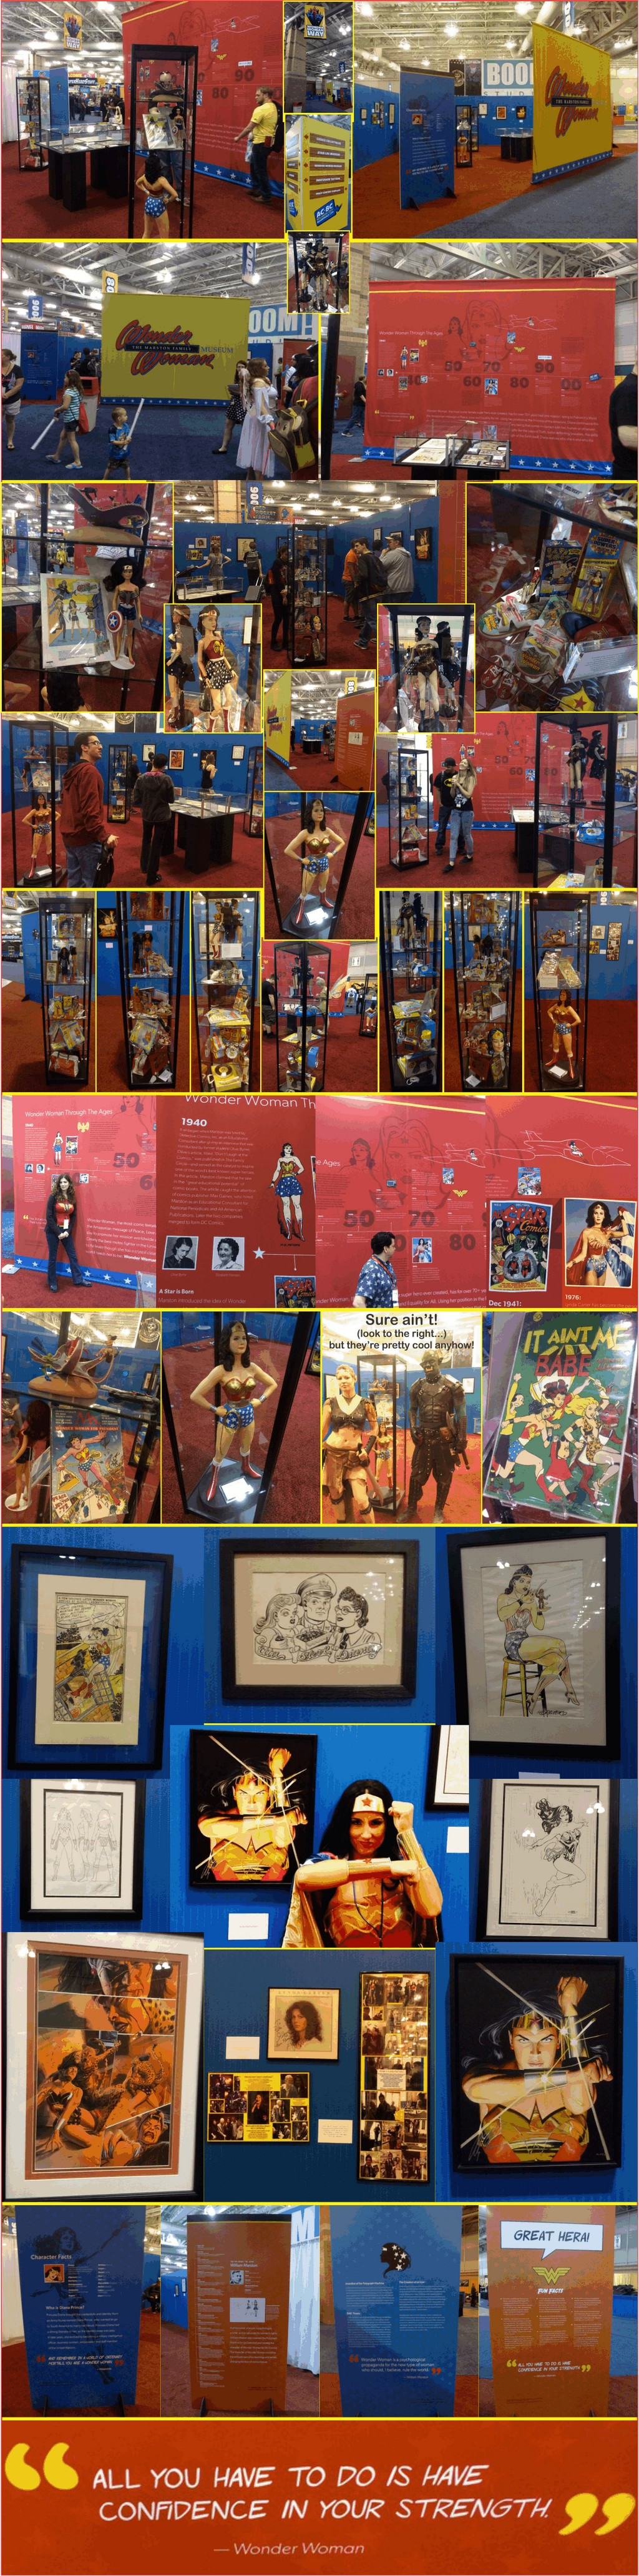 Wonder Woman Museum at AC Boardwalk Con 2015